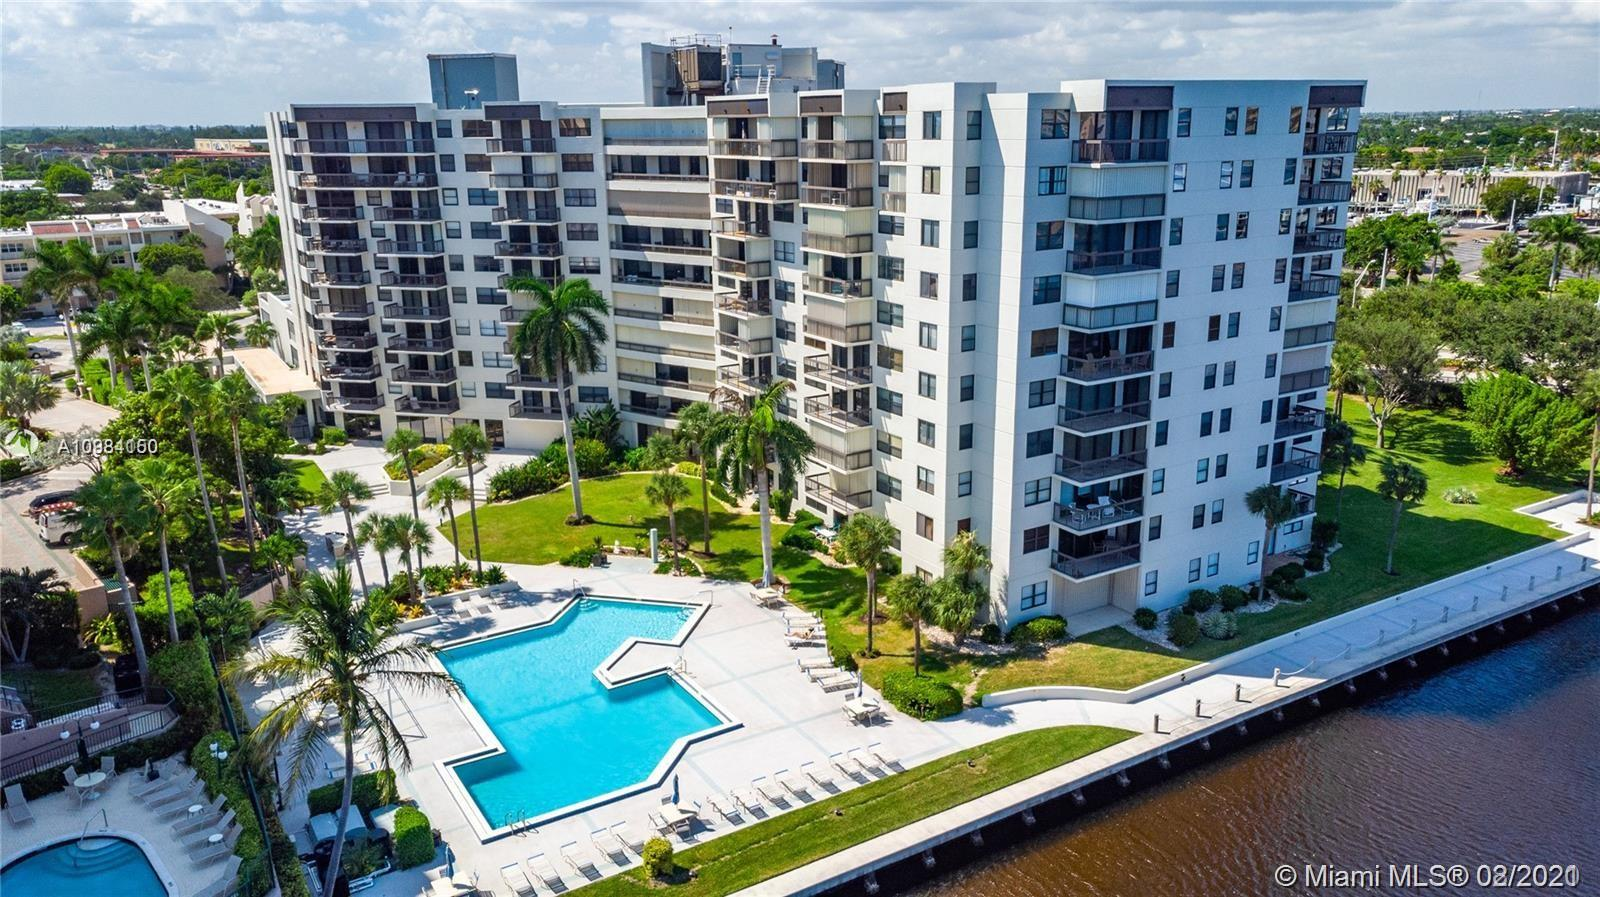 HUGE CONDO (1750 sqf approx) WITH OVERSIZED 40 FT BALCONY SPANNING ENTIRE UNIT FACING SOUTH AND EAST. GARDEN, POOL AND INTRACOASTAL VIEWS. FEELS LIKE A HOME SURROUNDED BY LUSH GREEN SPACES. COME WATCH THE BOATS. BEAUTIFUL FLOORS THROUGHOUT! LARGE OPEN KITCHEN, DINING & LIVING ALLOW FOR MAXIMUM LIGHT. MASTER BEDROOM HAS FURNISHED WALK IN CLOSET WITH BUILT-INS THAT COMPLIMENT THE HUGE EN-SUITE BATHROOM. SECOND LARGE BEDROOM WITH WALK-IN MAKES FOR THE PERFECT GUEST ROOM. LARGE LAUNDRY ROOM WITH WASHER AND DRYER IN UNIT. AMENITIES: PARTY ROOM, GYM, BILLIARD, 24 HR SECURITY, CABLE, AND COVERED PARKING. PET FRIENDLY UP TO TWO DOGS. BUILDING HAS BEEN RECENTLY RENOVATED AND KNOWN FOR ITS STYLE AND HIGH-END QUALITY LIFESTYLE. MINUTES TO THE BEACH! COME LIVE THE DREAM. THIS IS FLORIDA!